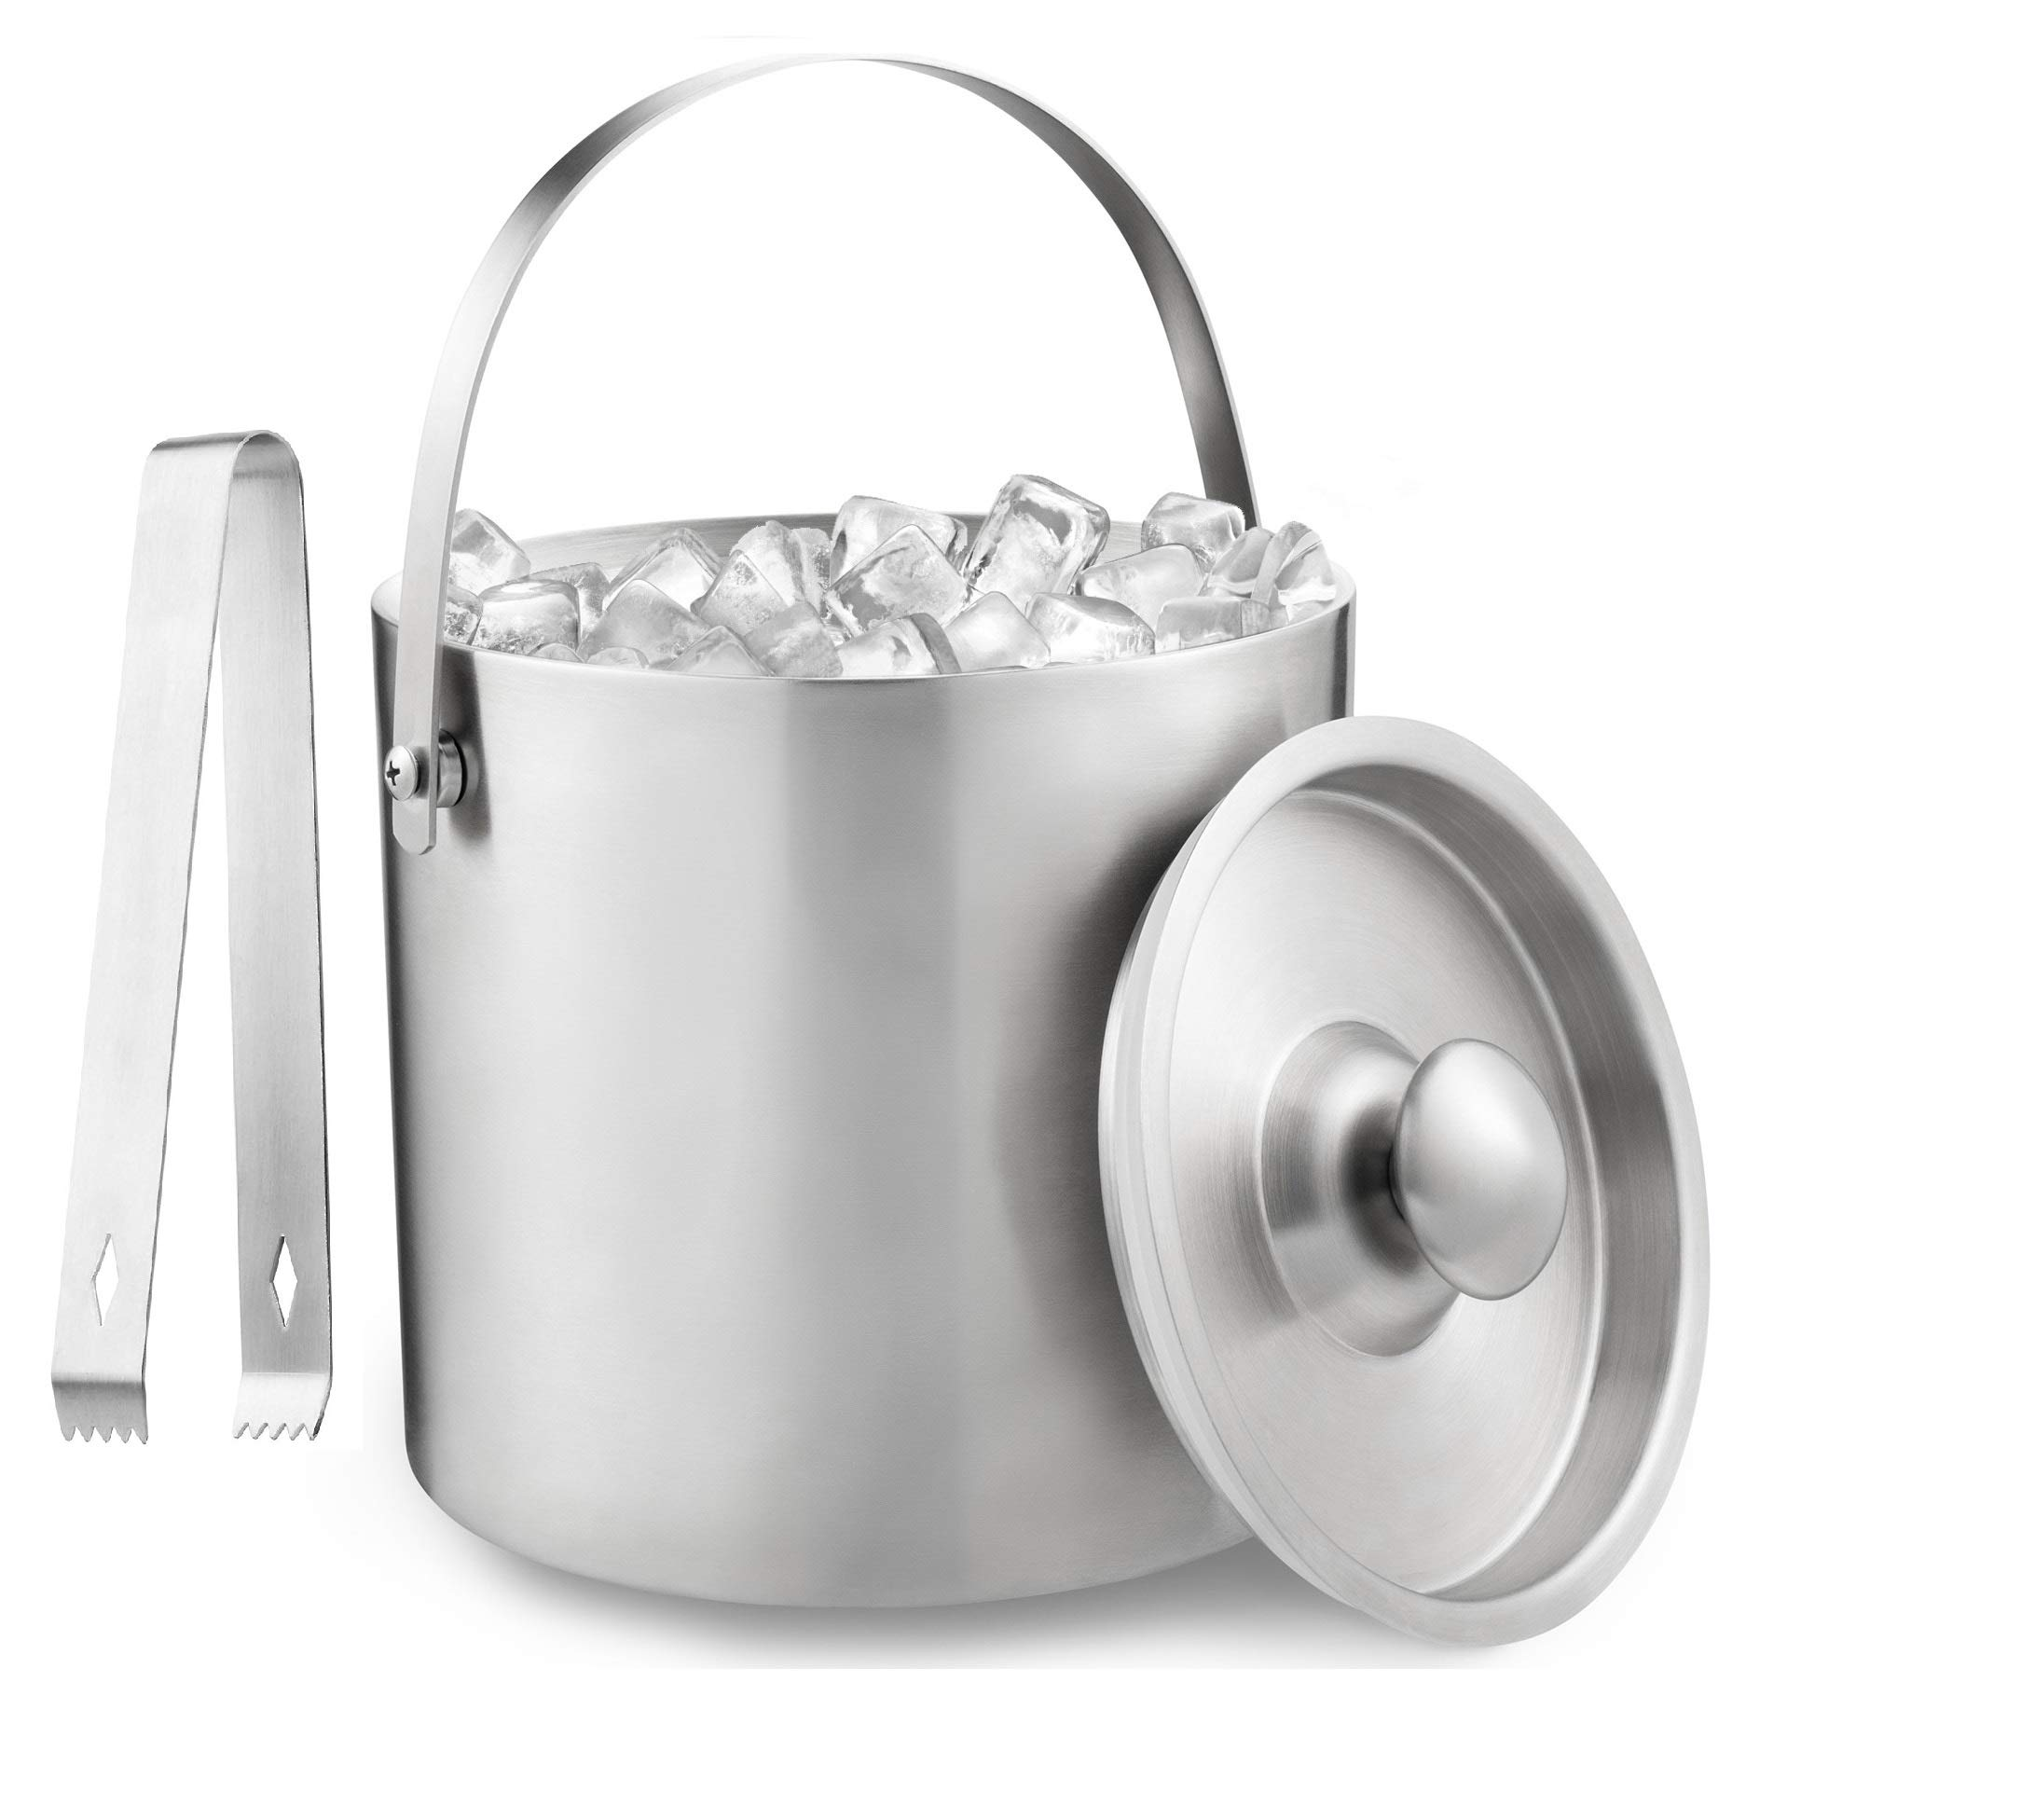 Deppon Insulated Ice Bucket with Tong Sealed by Rubber Ring Double Walled Stainless Steel Tub Heavy-Duty Compact Enhanced Handle Wine Liquor Accessory